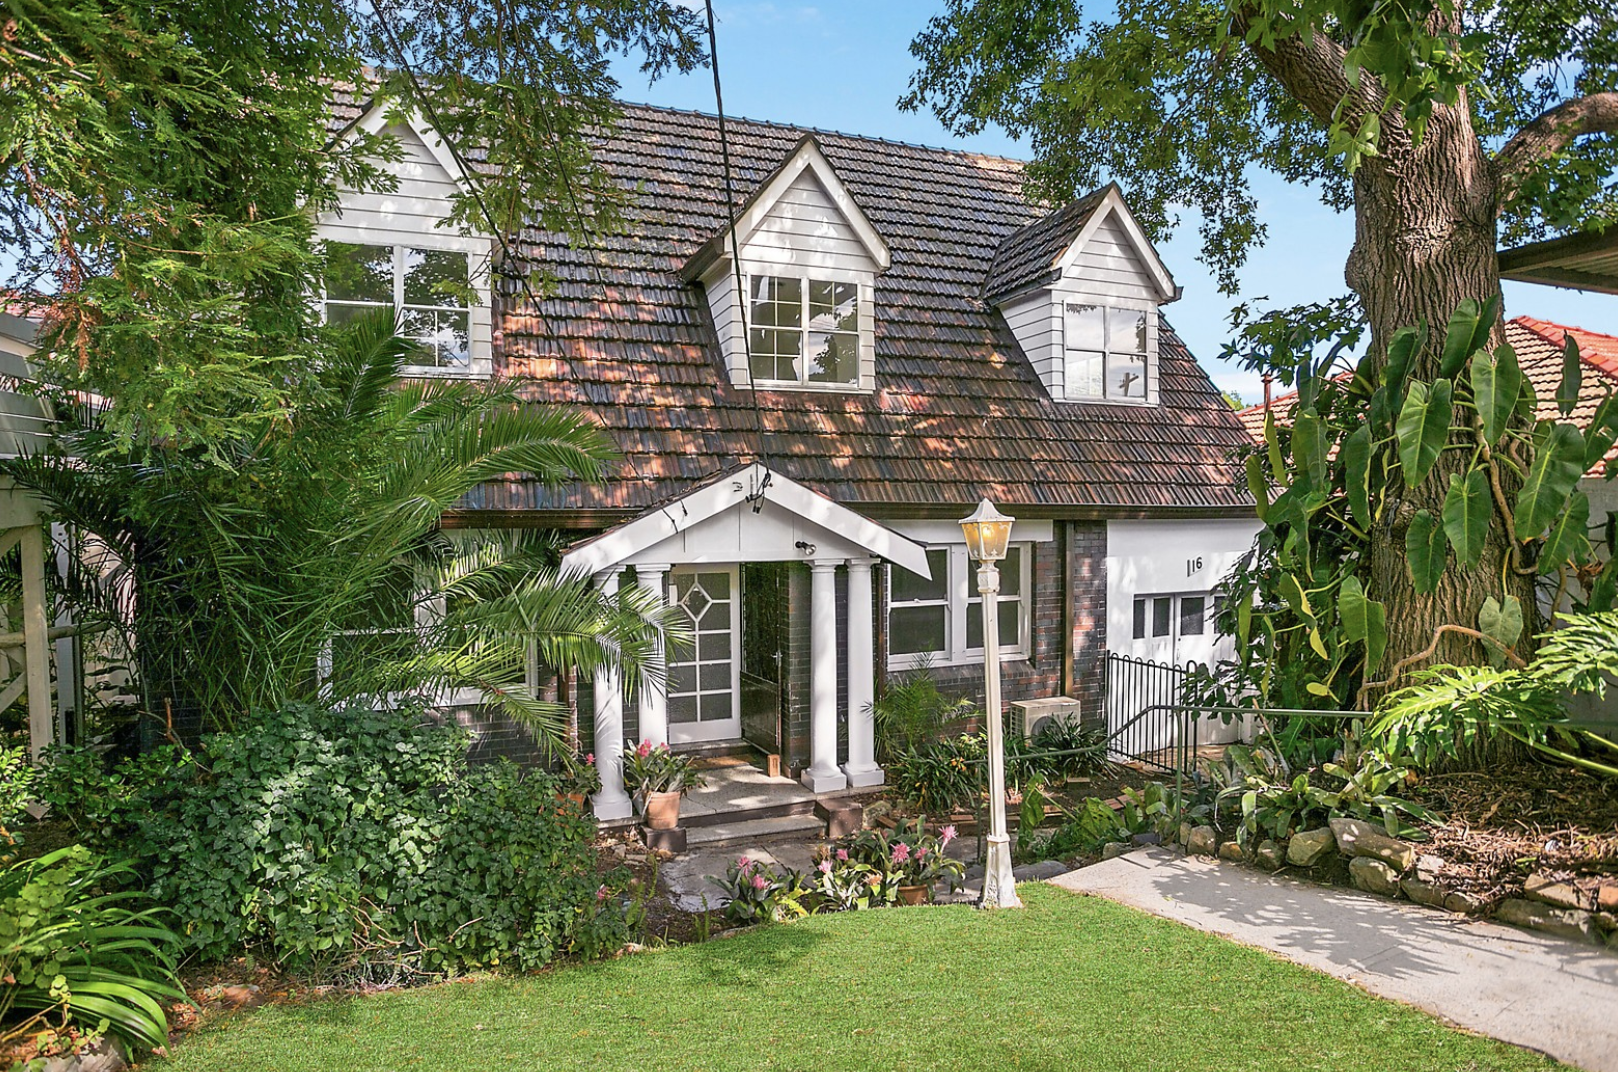 16 Inkerman St, Mosman, was purchased by Cohen Handler in March 2017 for $3,050,000.